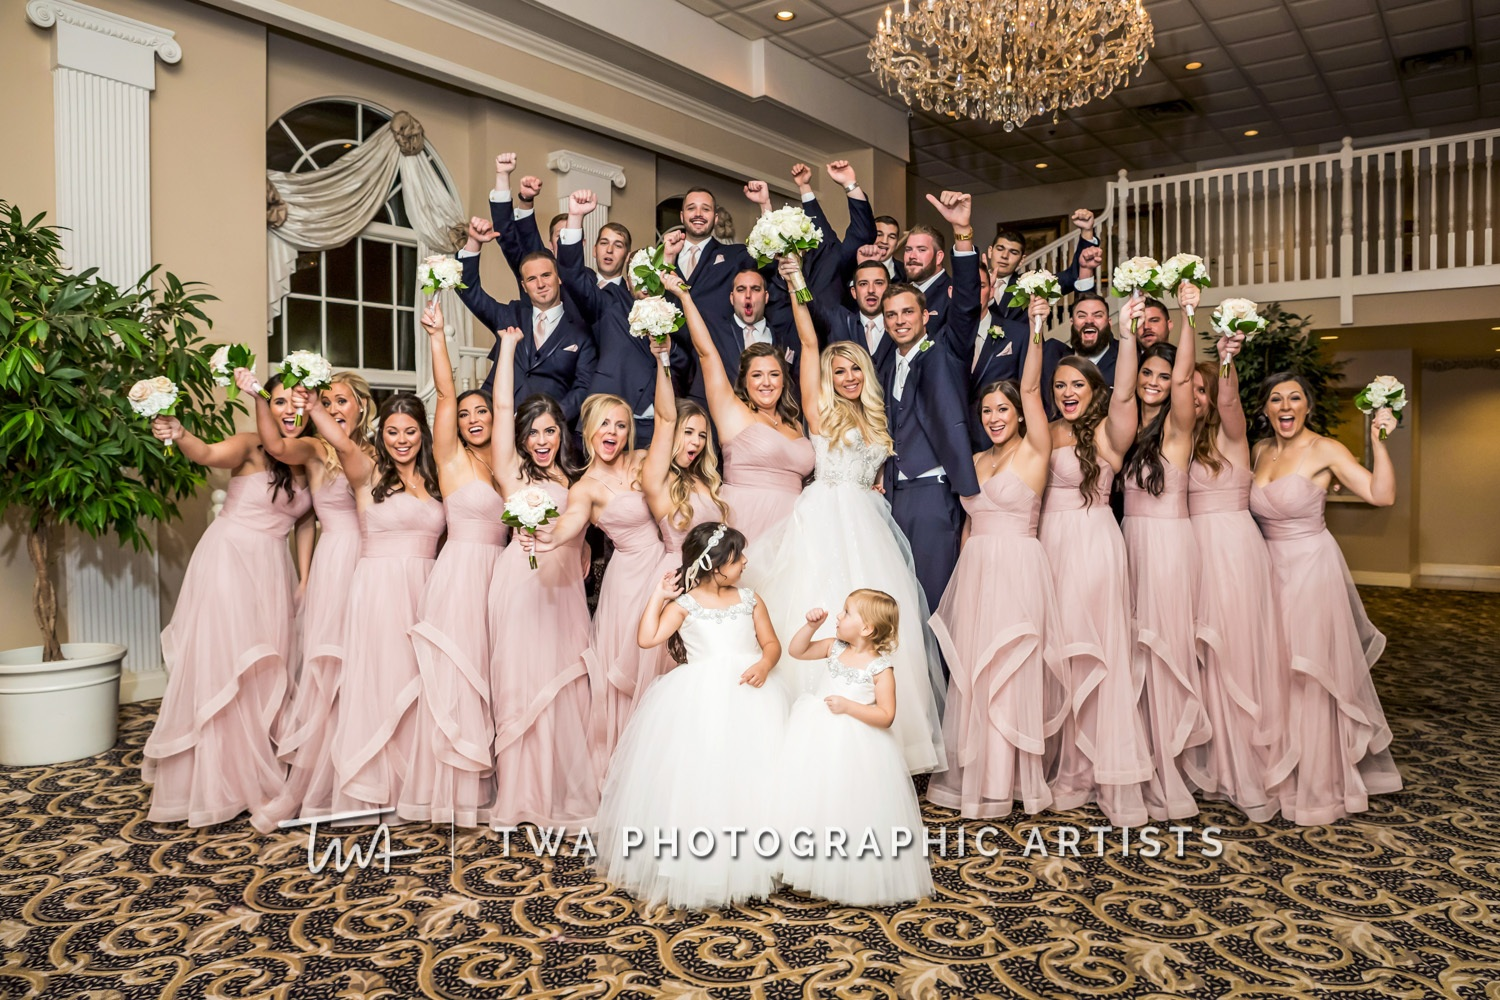 Chicago-Wedding-Photographer-TWA-Photographic-Artists-Abbington-Banquets_Annoreno_Baird_MiC_SG-0543